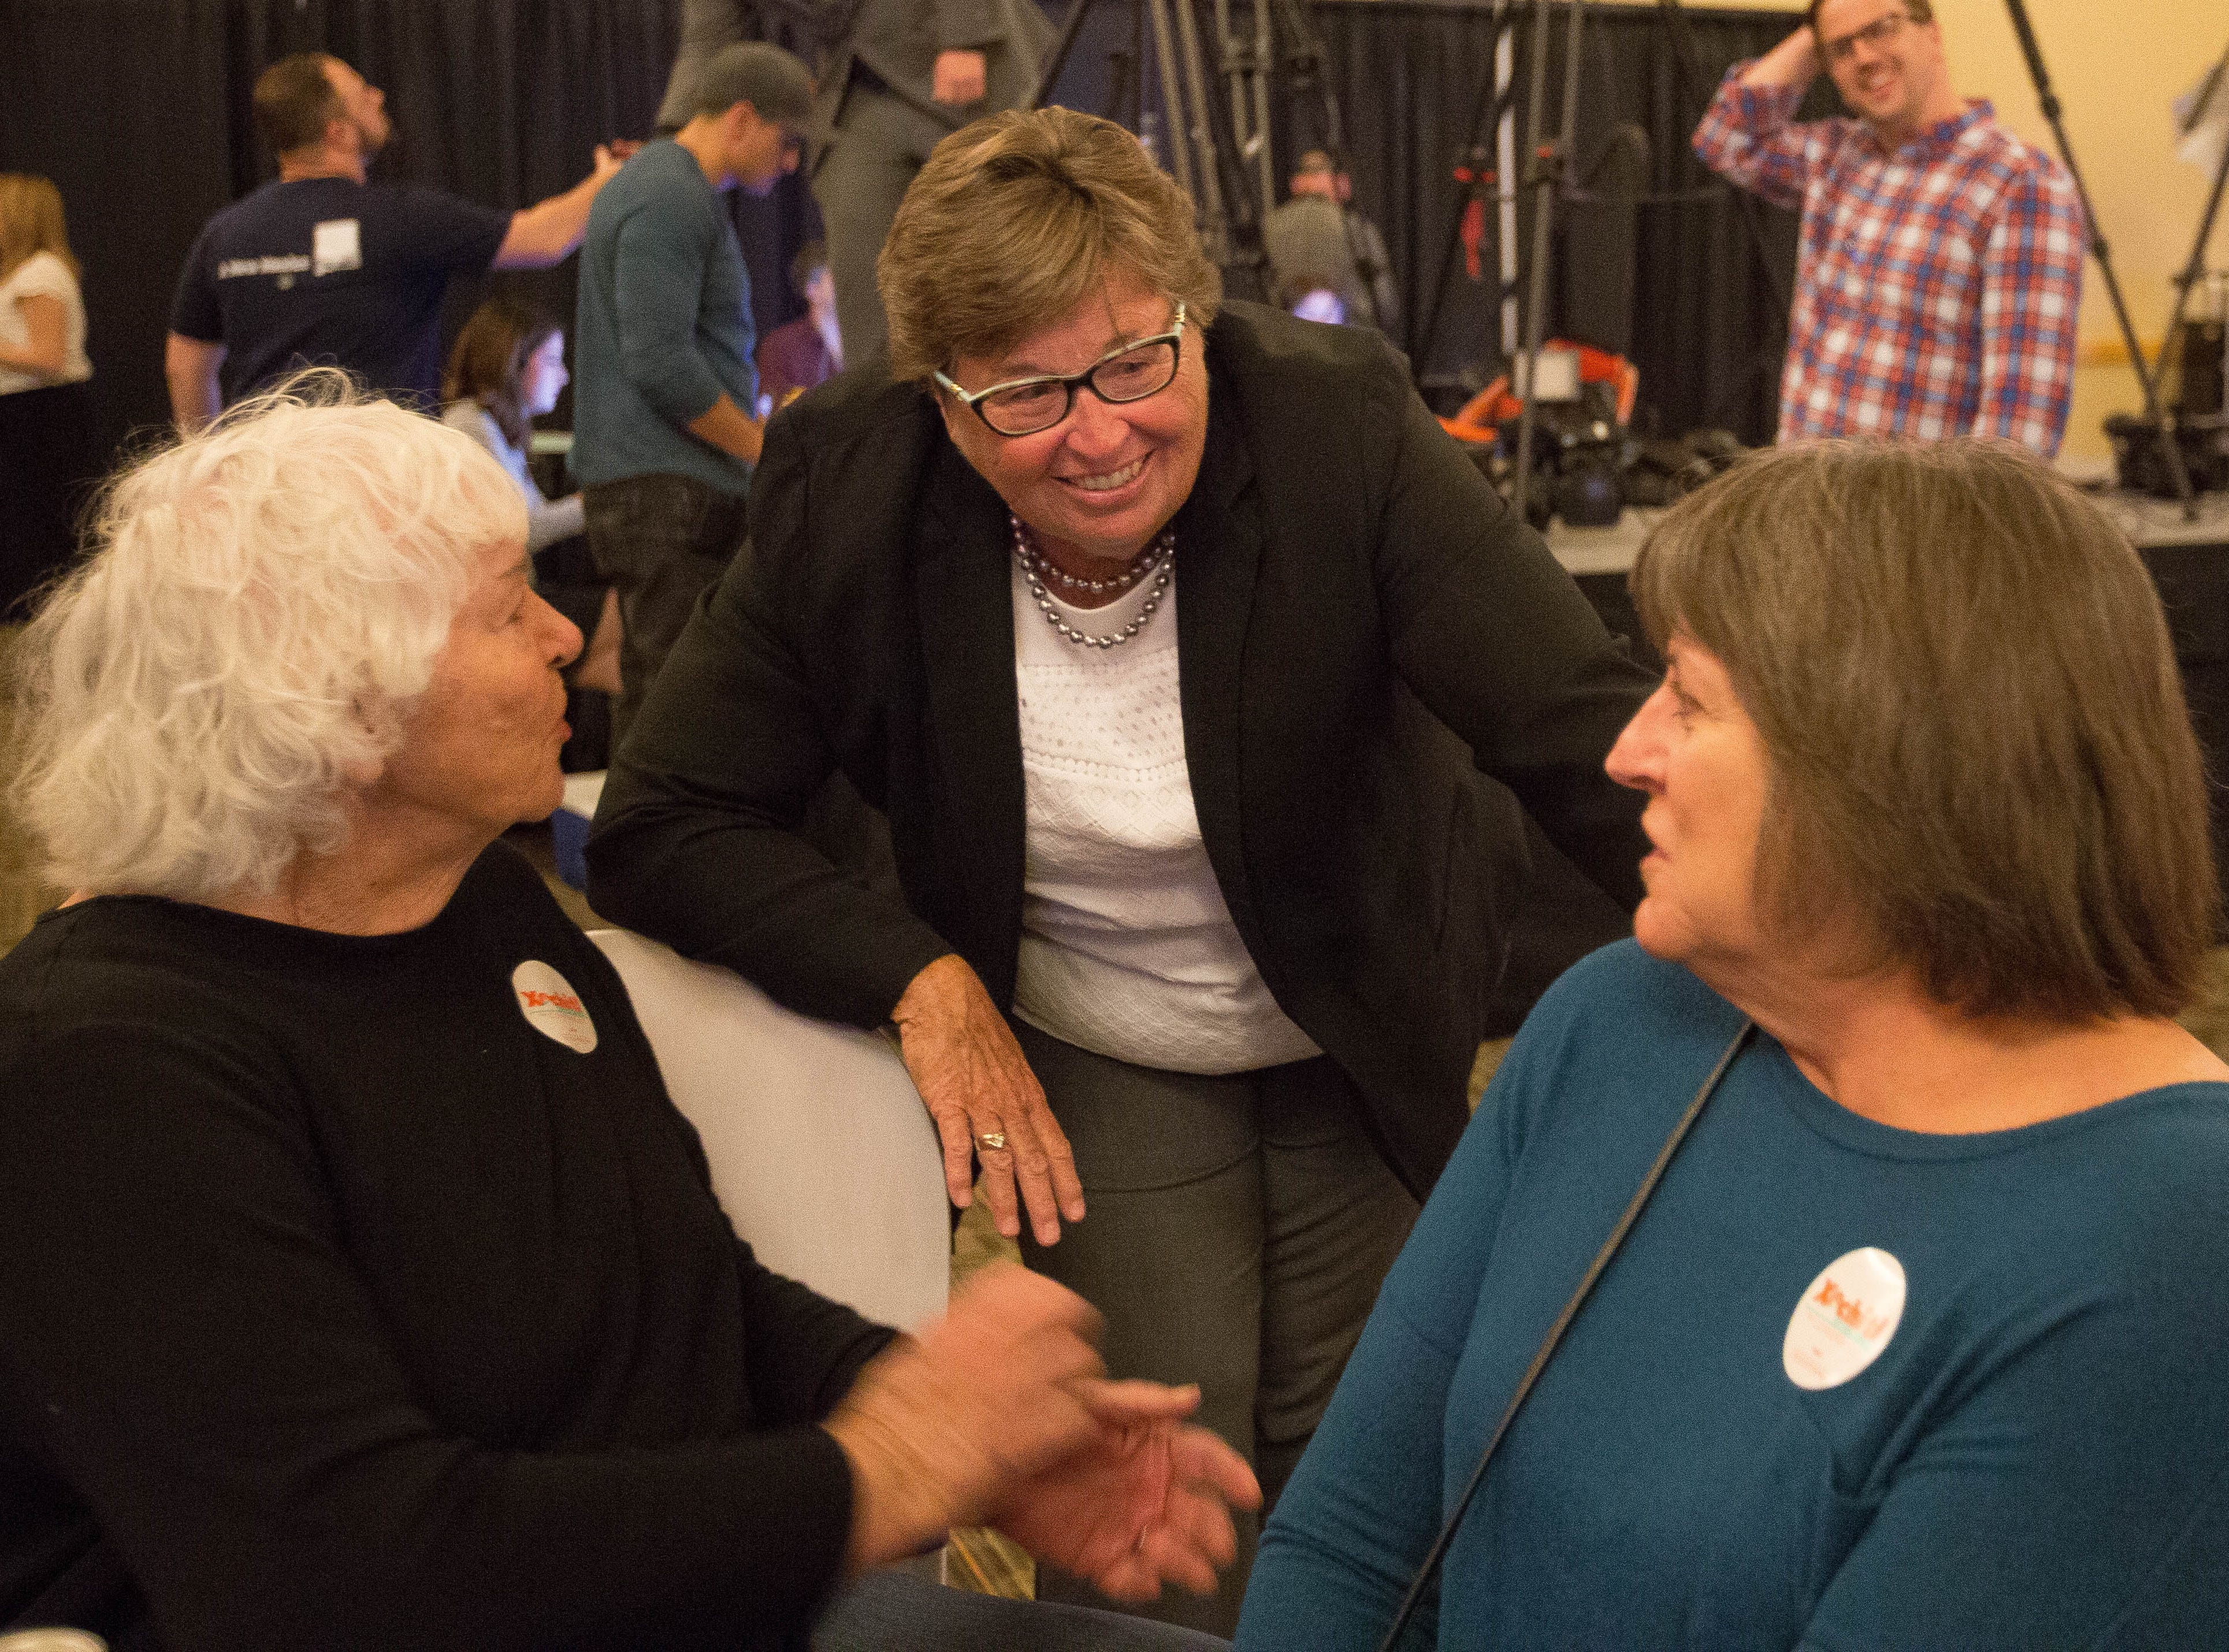 Kim Stewart, Democratic candidate for sheriff of Doña Ana County, talks with supporters Joan Keif, left, and Beverly Stotz, right, at the Las Cruces Convention Center during a Democratic Party watch party held Tuesday, Nov. 6, 2018.